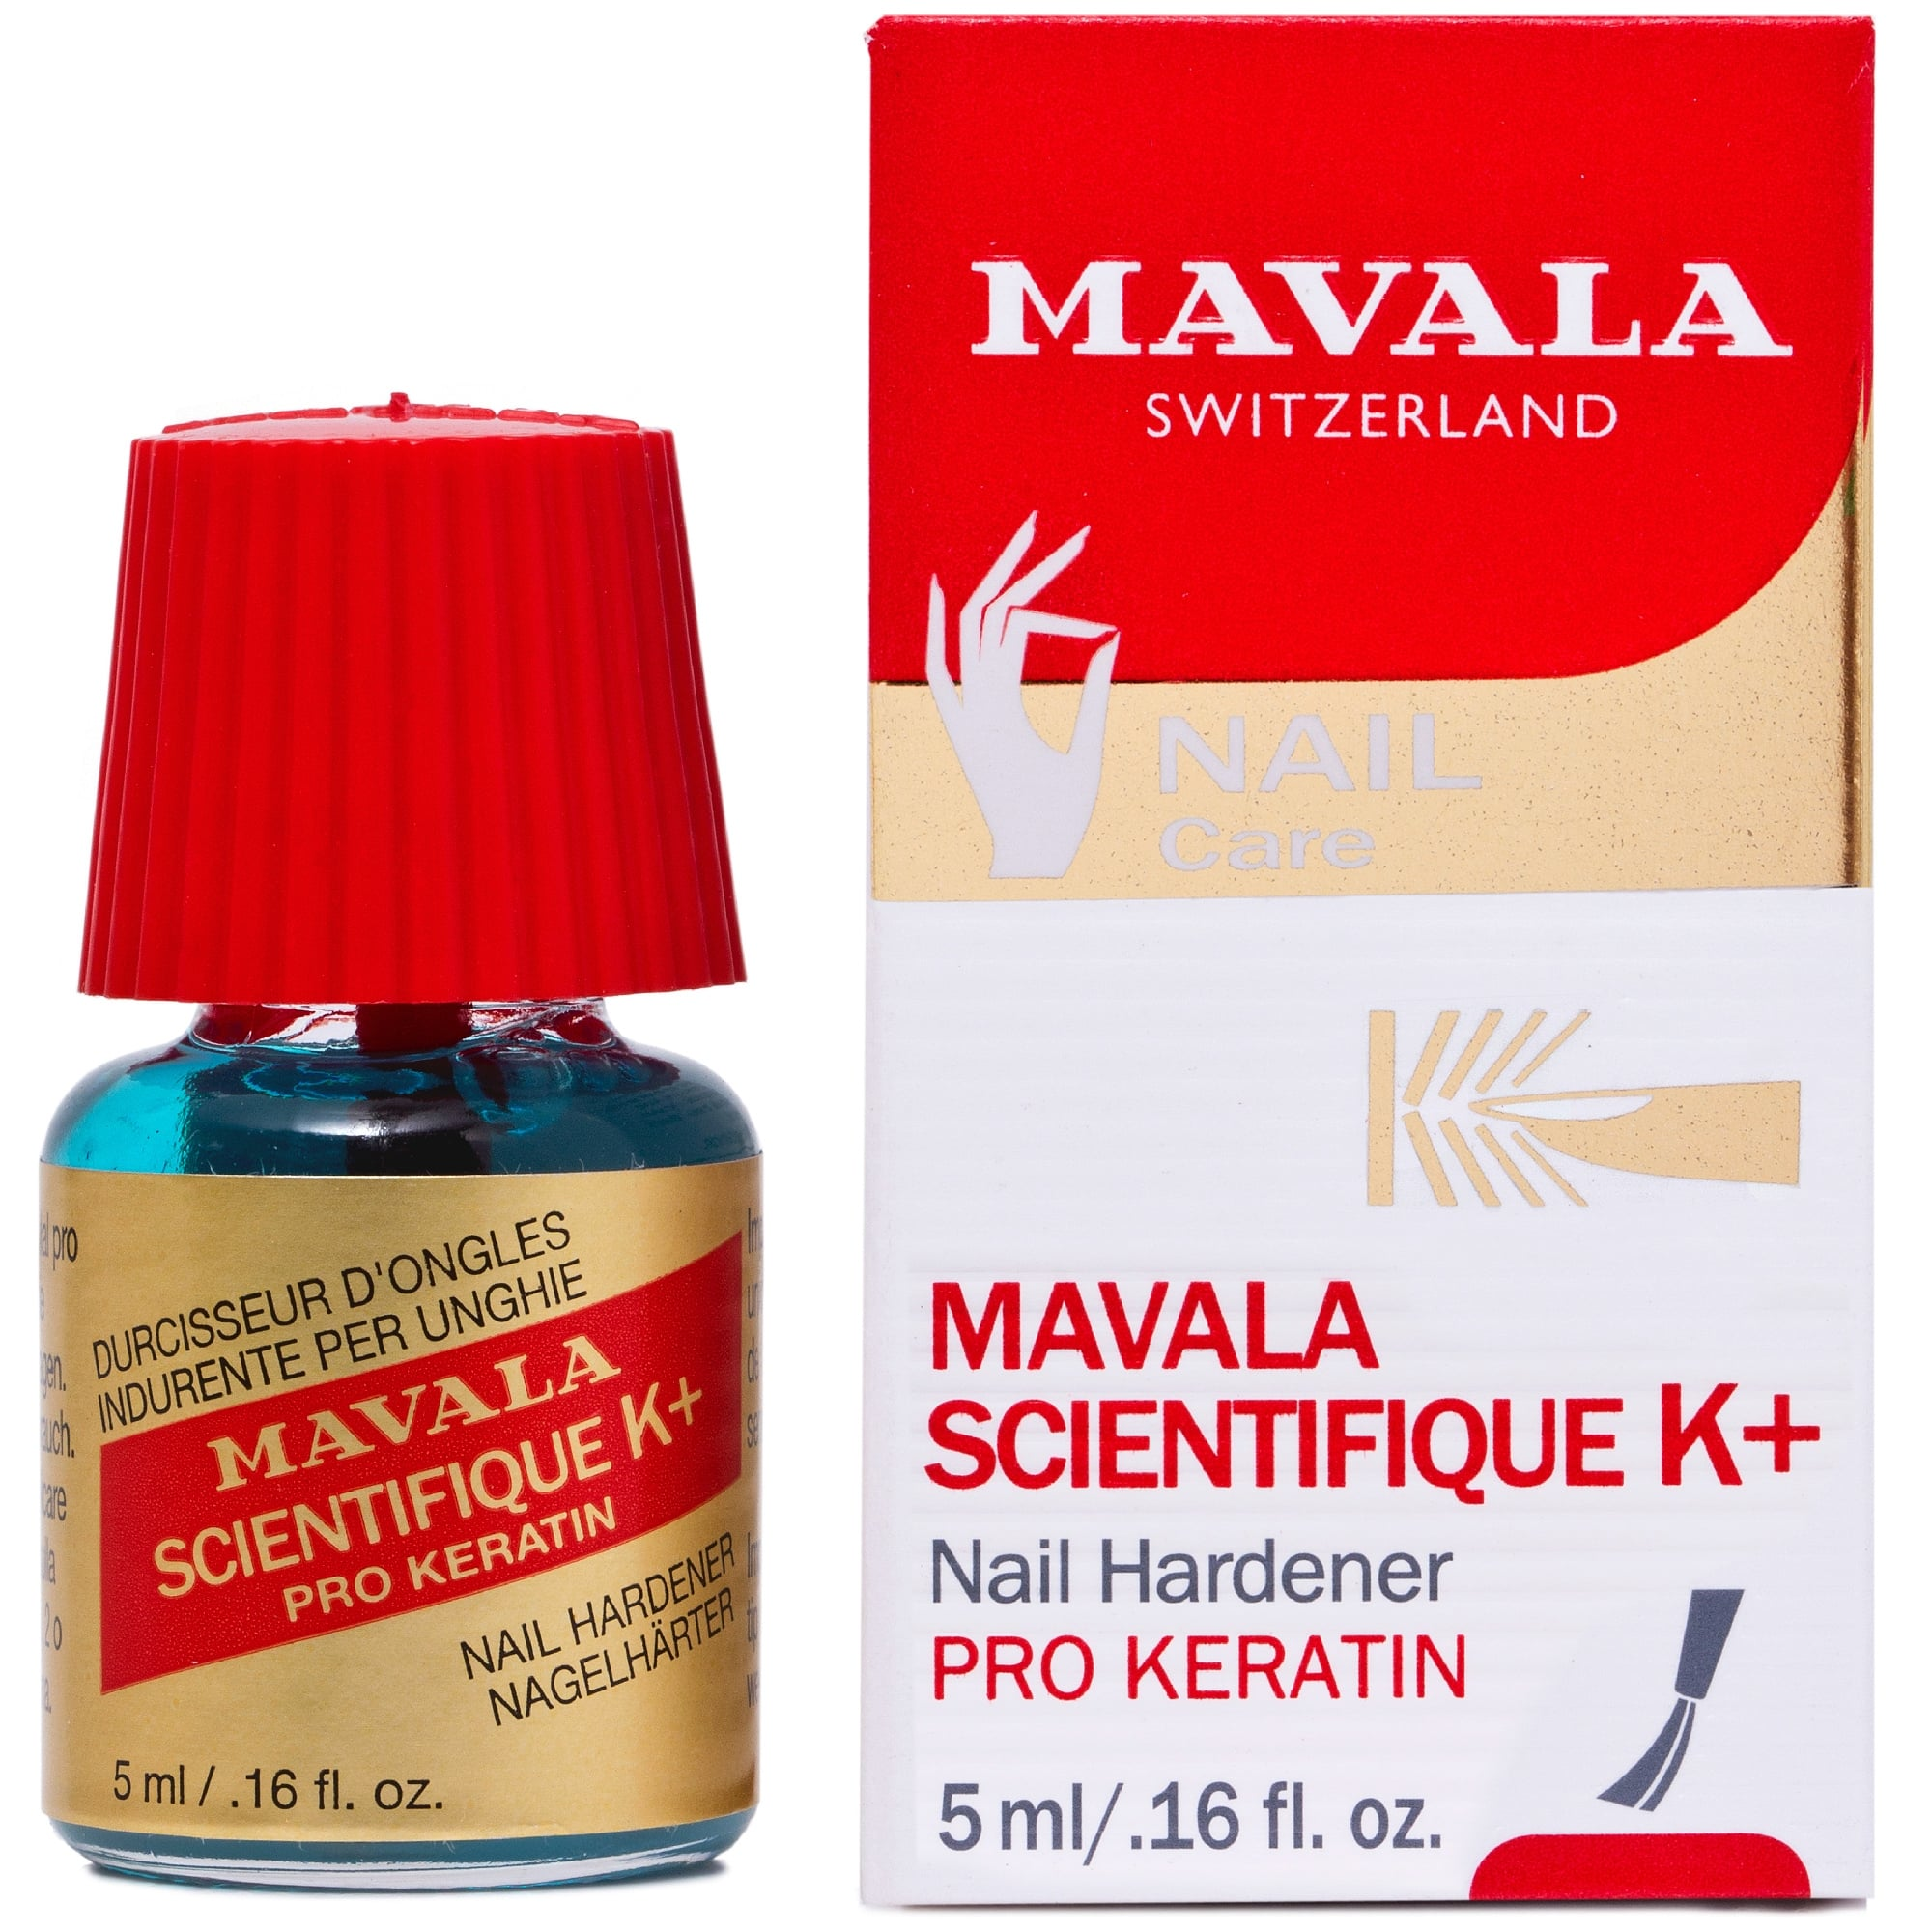 Mavala Scientifique K+ - Nail Hardener 5ml